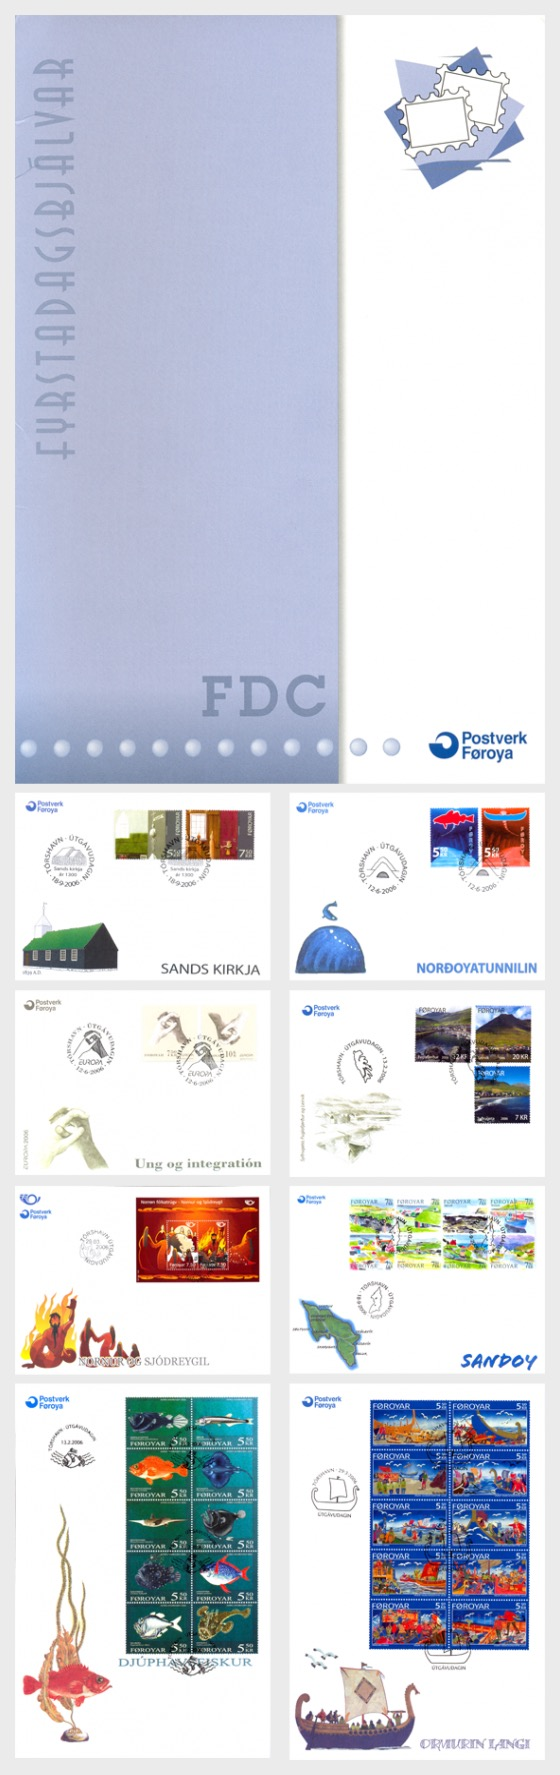 2006 FDC Folder - Annual Product